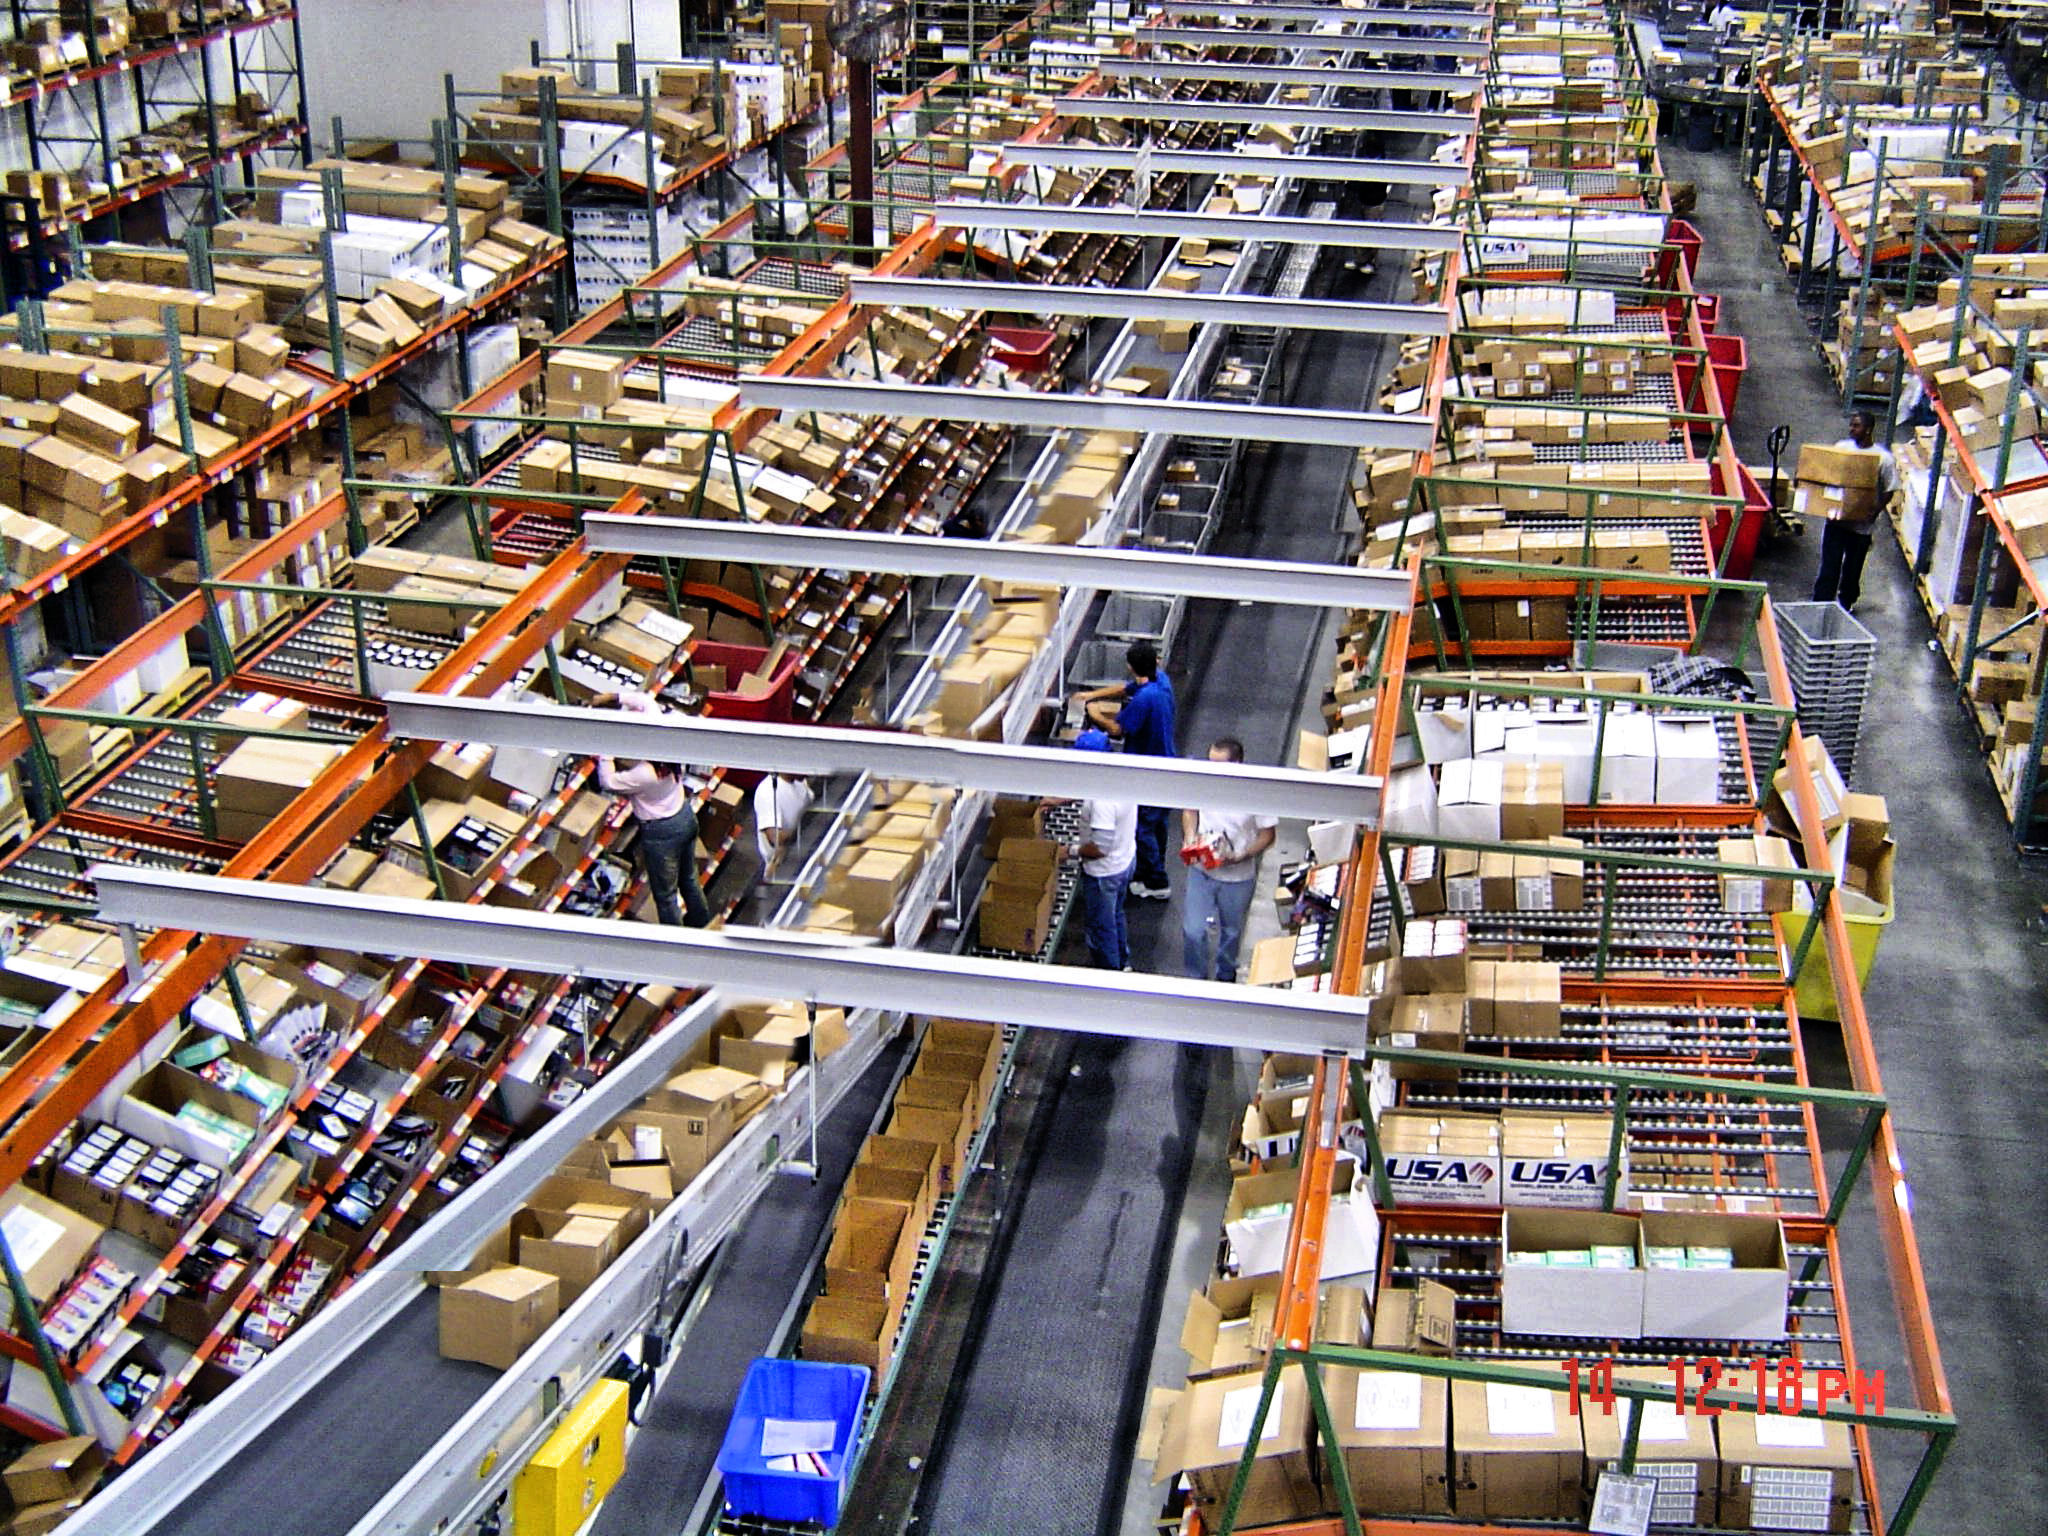 warehouse design framework The data warehouse is a tool for data storage and retrieval that allows leaders to more efficiently examine performance over time and at multiple levels: student, class, grade level, school, and district.